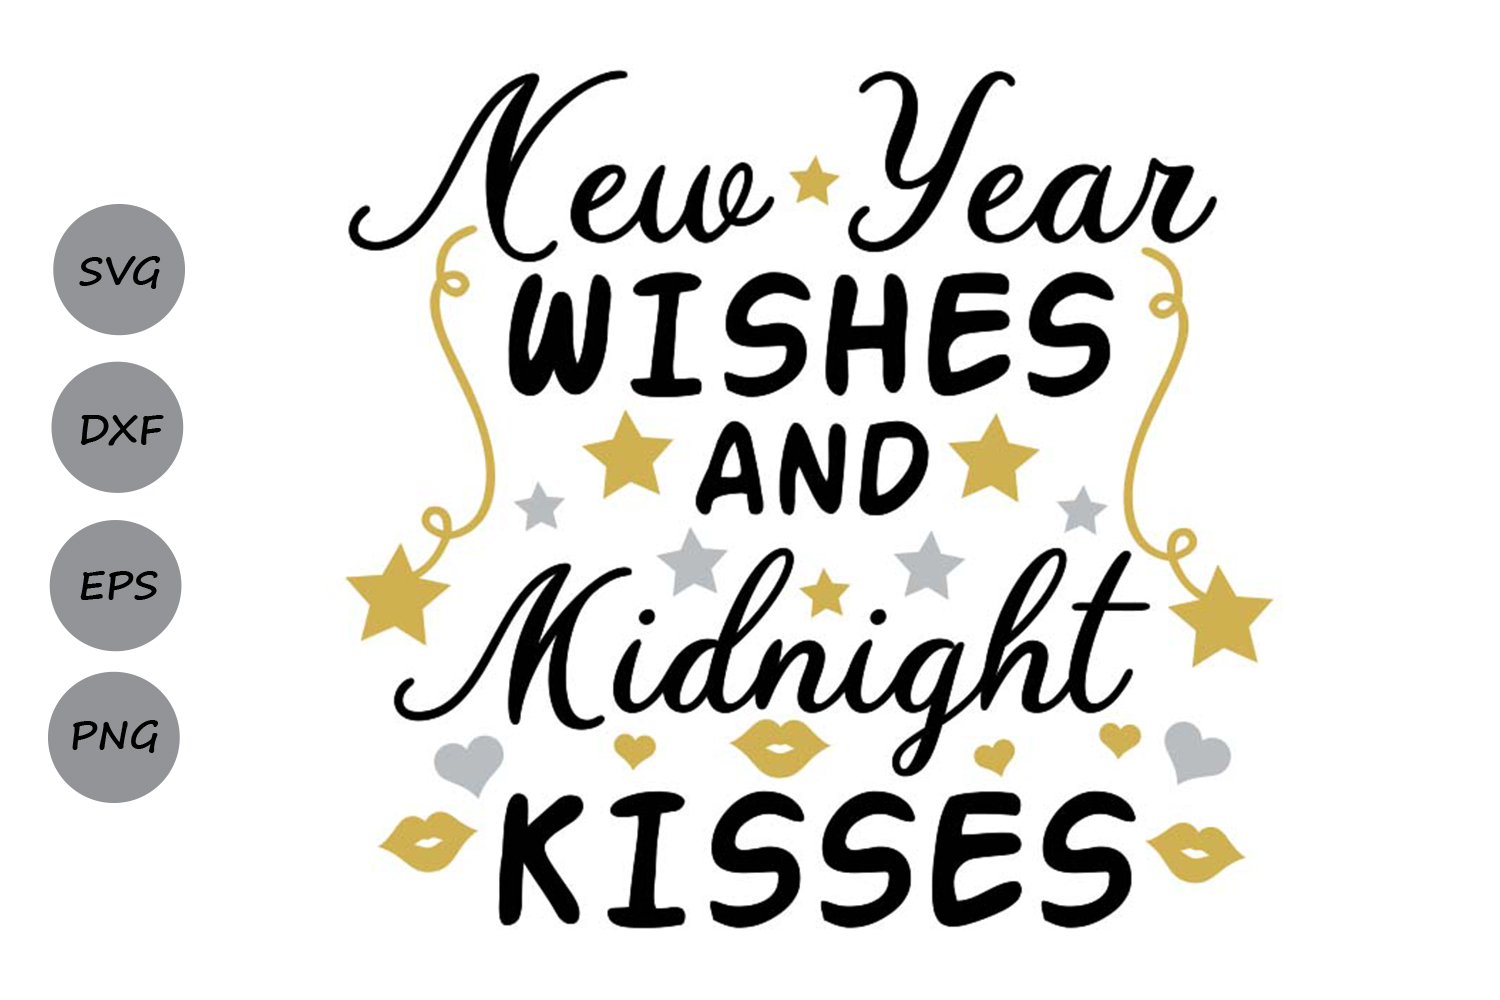 Download Free New Year Wishes And Midnight Kisses Svg Graphic By Cosmosfineart SVG Cut Files